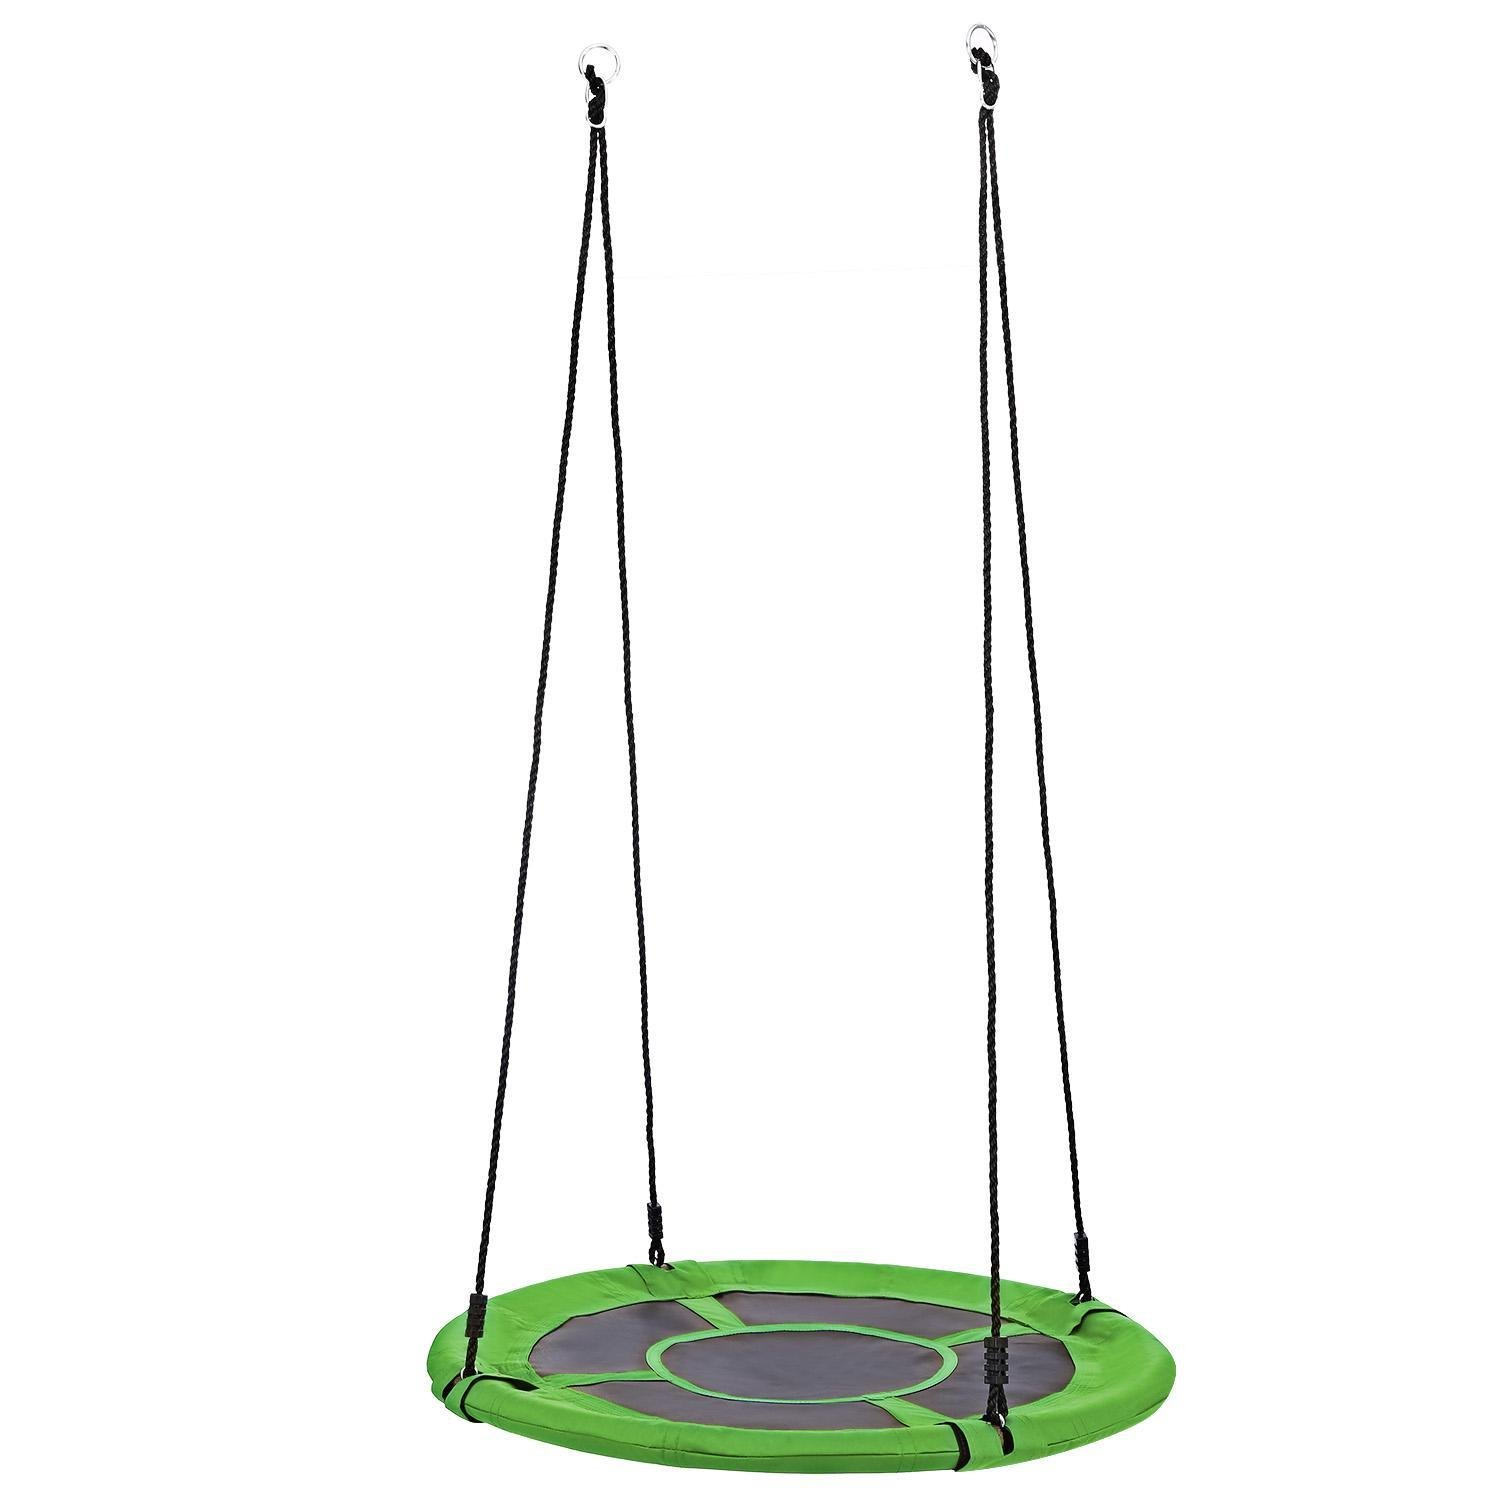 Fashine Outdoor 40-inch Large Tree Swing Set with Adjustable Nylon Rope and Oxford Cloth, Load Capacity 440lb (Green(Round))